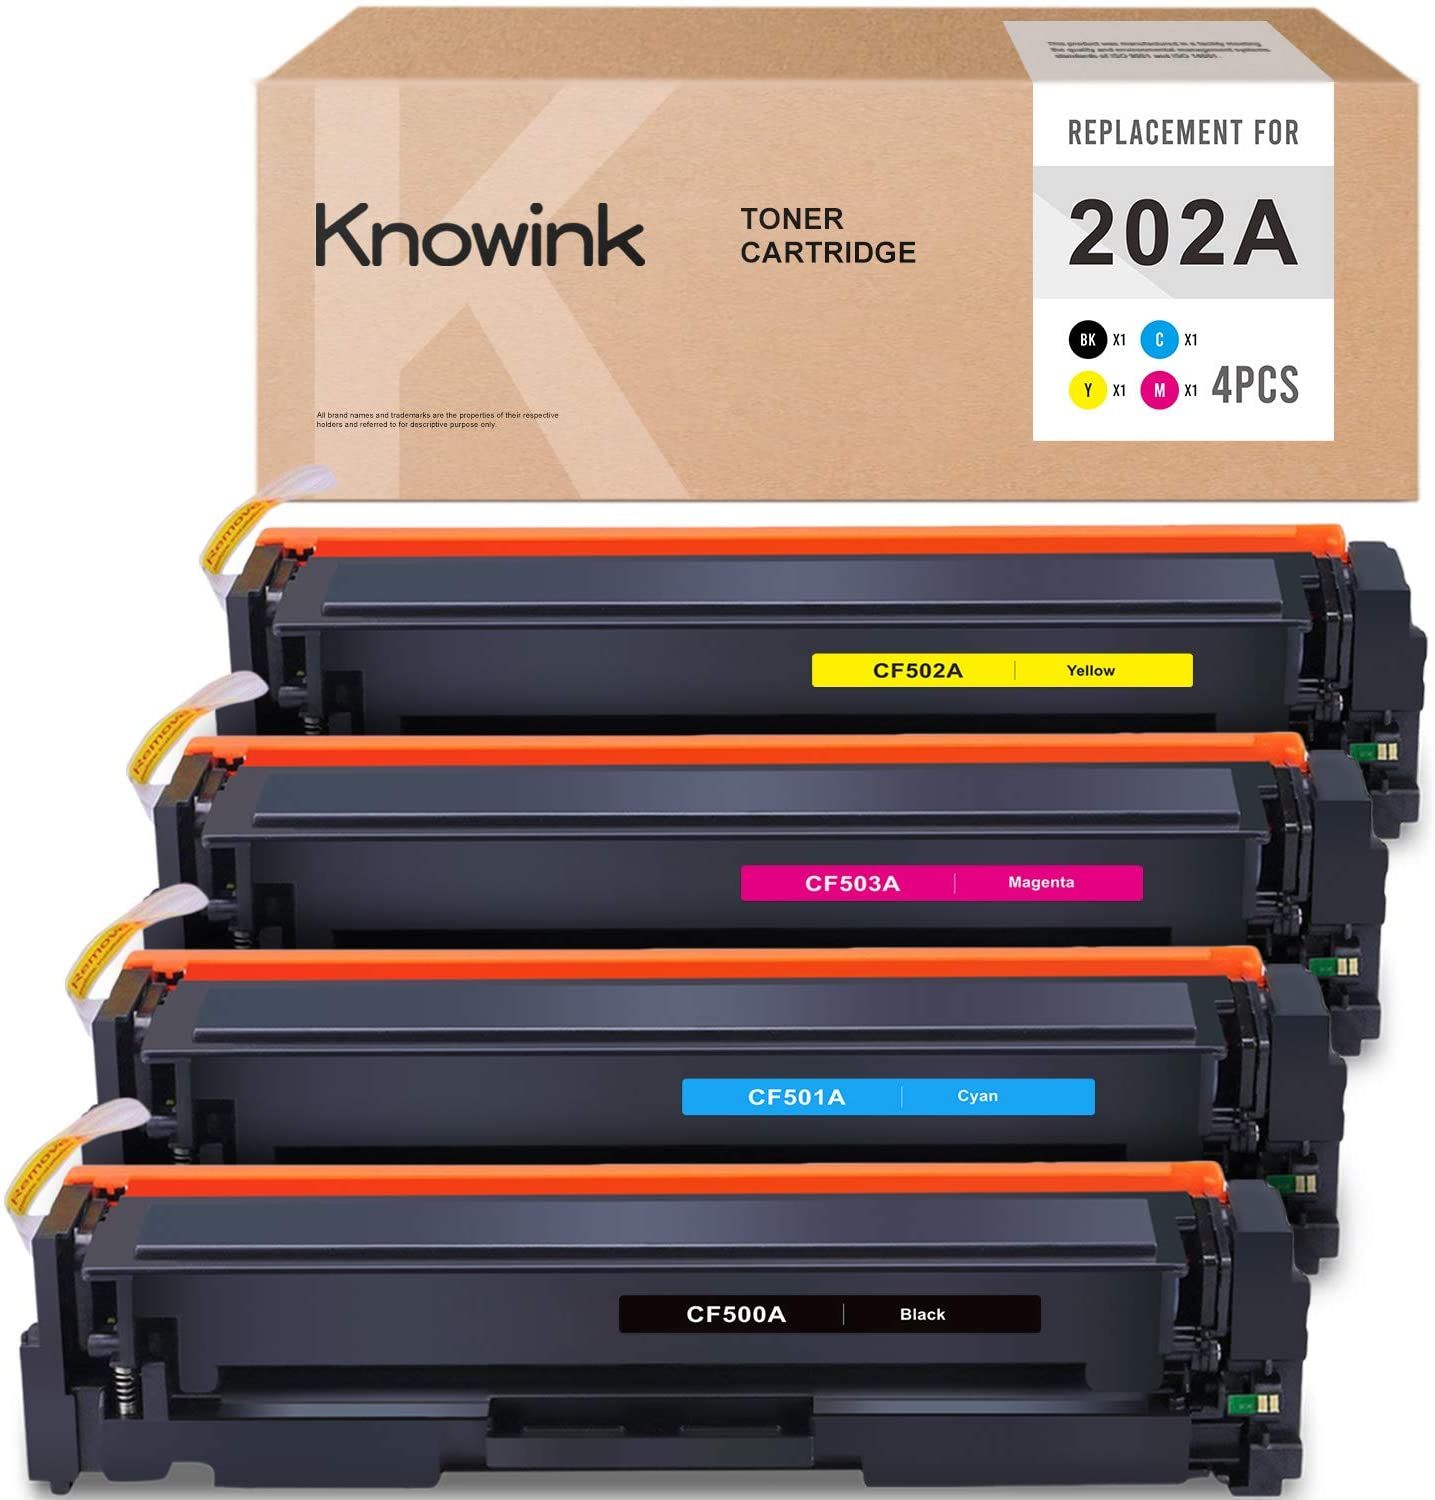 KNOWINK Compatible Toner Cartridge Replacement for HP 202A CF500A CF501A CF502A CF503A for HP Color Laserjet Pro MFP M281fdw M254dw M281fdn M254nw M280nw Toner (Black Cyan Yellow Magenta, 4-Pack)